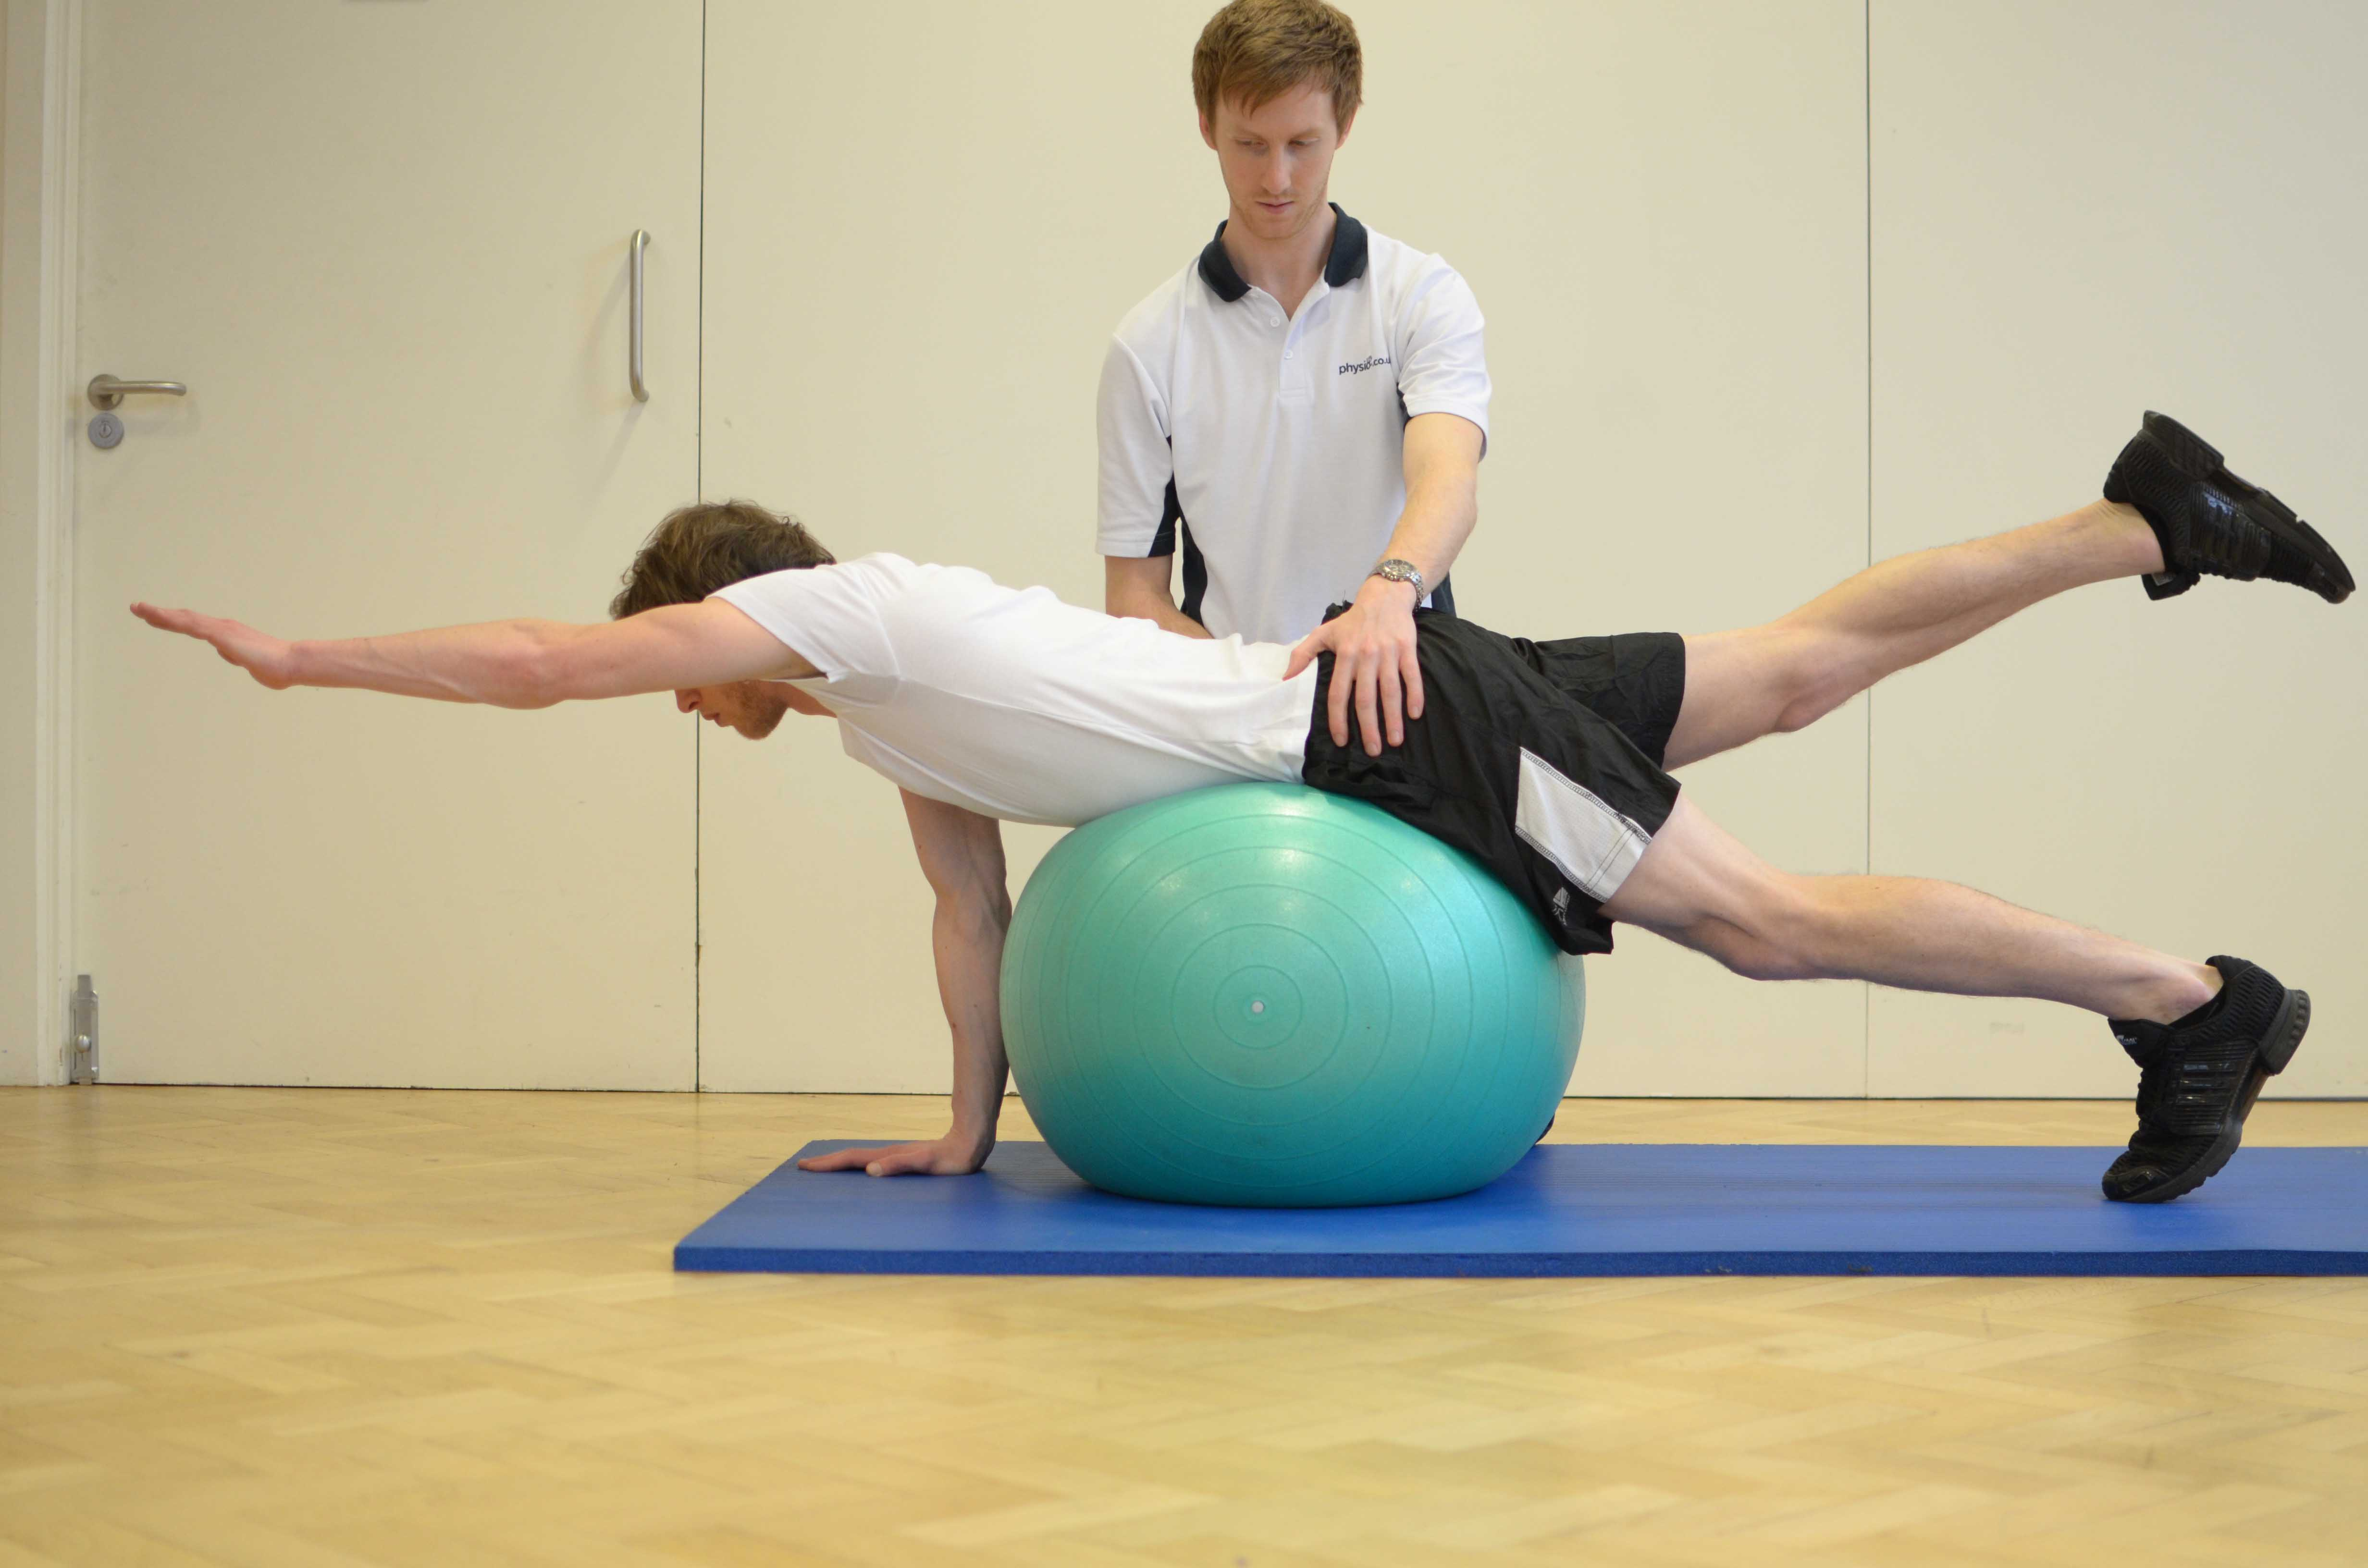 Lower back strengthening exercises supervised by Physiotherapist